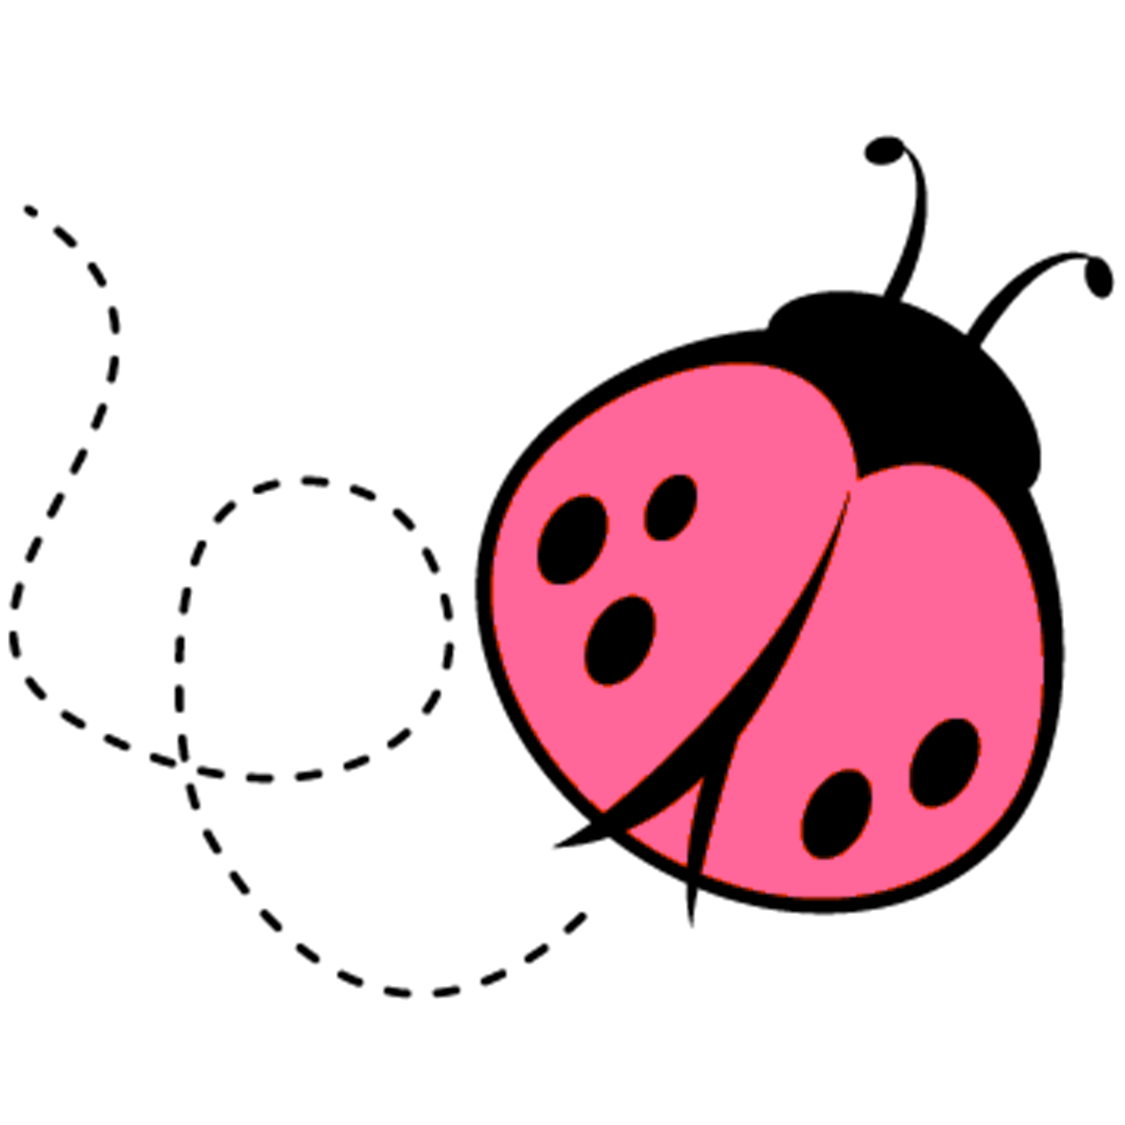 graphic regarding Ladybug Template Printable referred to as Printable Ladybug Template Cake Guidelines And Ideas clipart